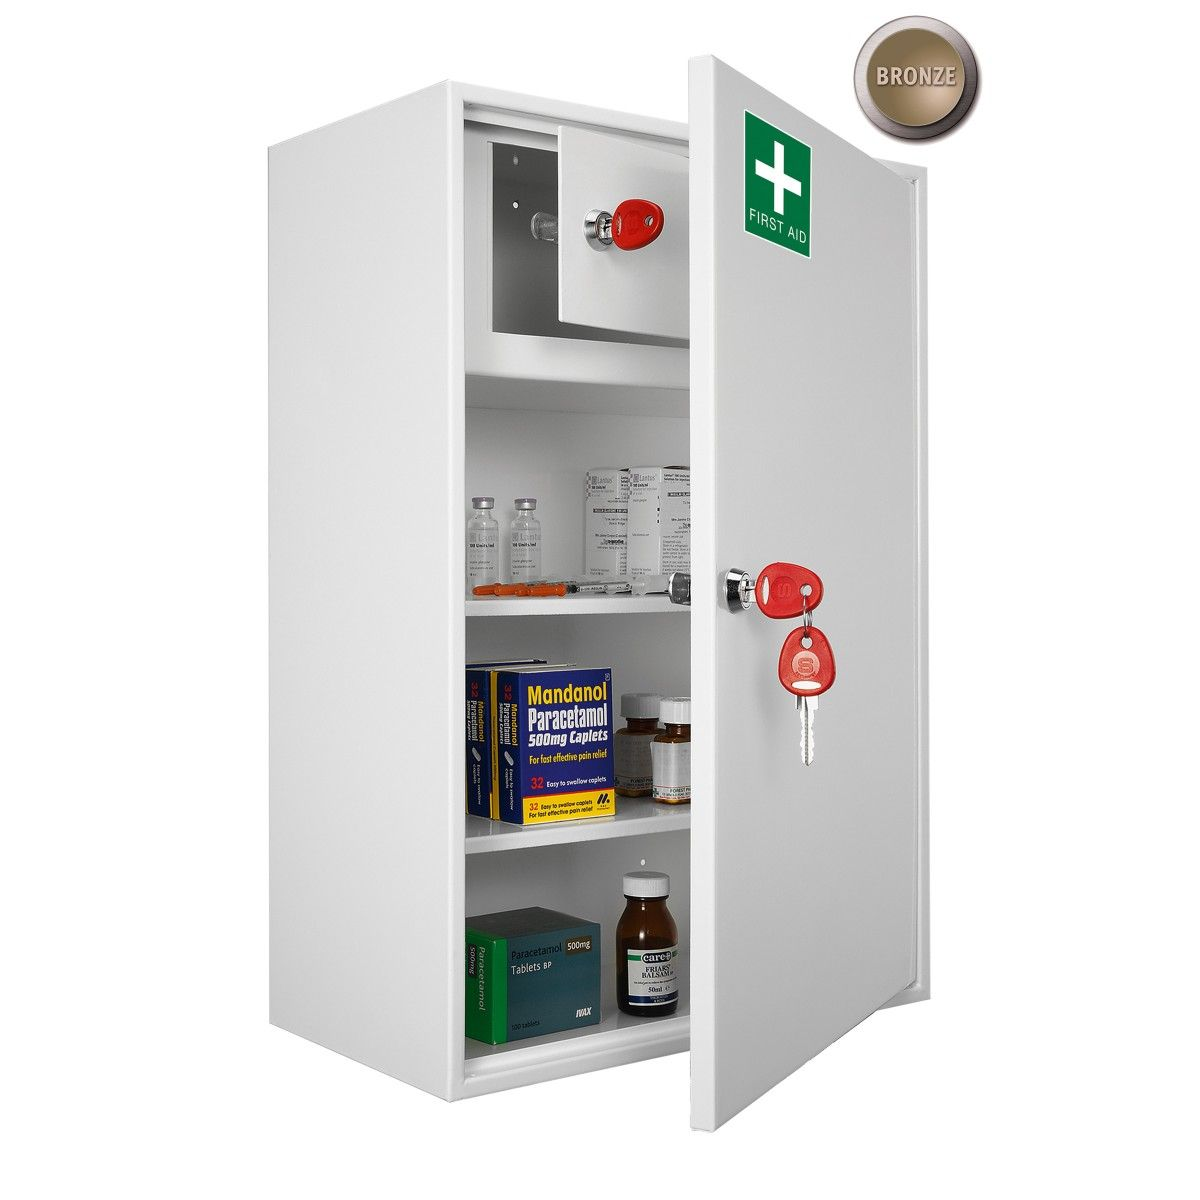 Superieur Securikey Medical Cabinet   First Aid Ideal For General First Aid Equipment  Lockable Inner Compartment With 2 Keys Supplied With 2 Removable Shelves ...